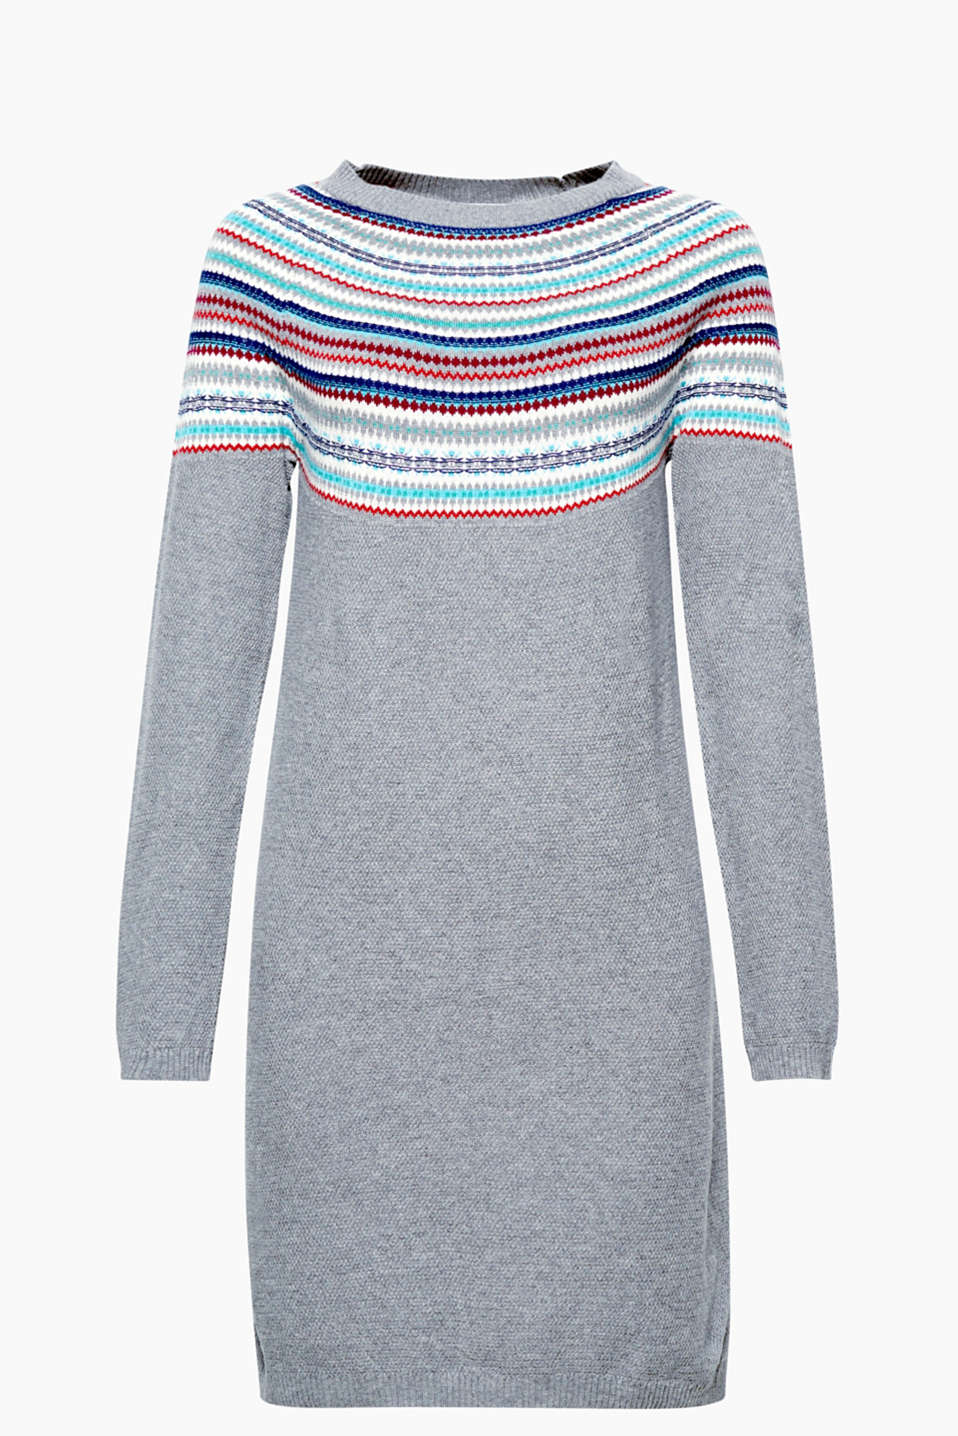 This finely textured knitted dress boasts a colourful intarsia pattern and pure cotton that is comfortable to wear.